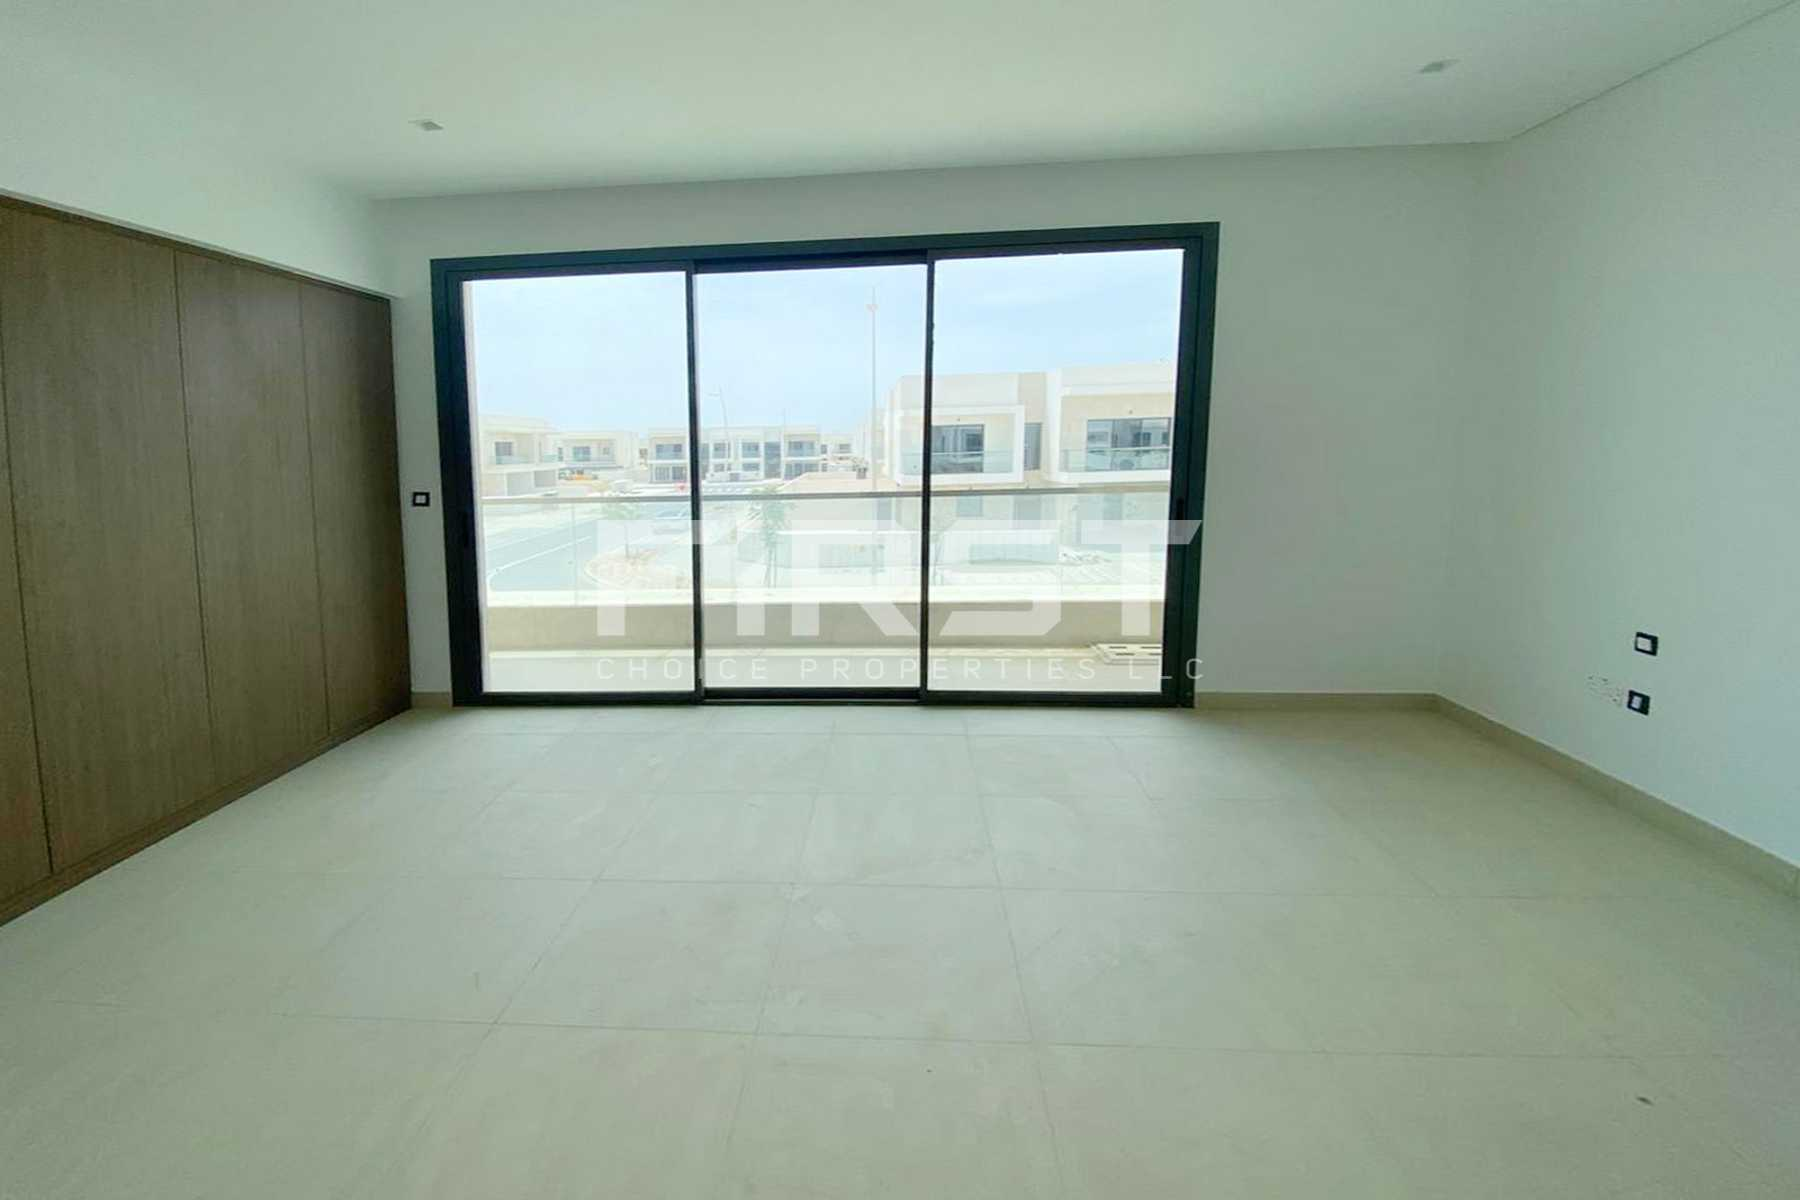 External Photo of 4 Bedroom Duplex Type 4Y in Yas Acres Yas Island Abu Dhabi UAE (4).jpg